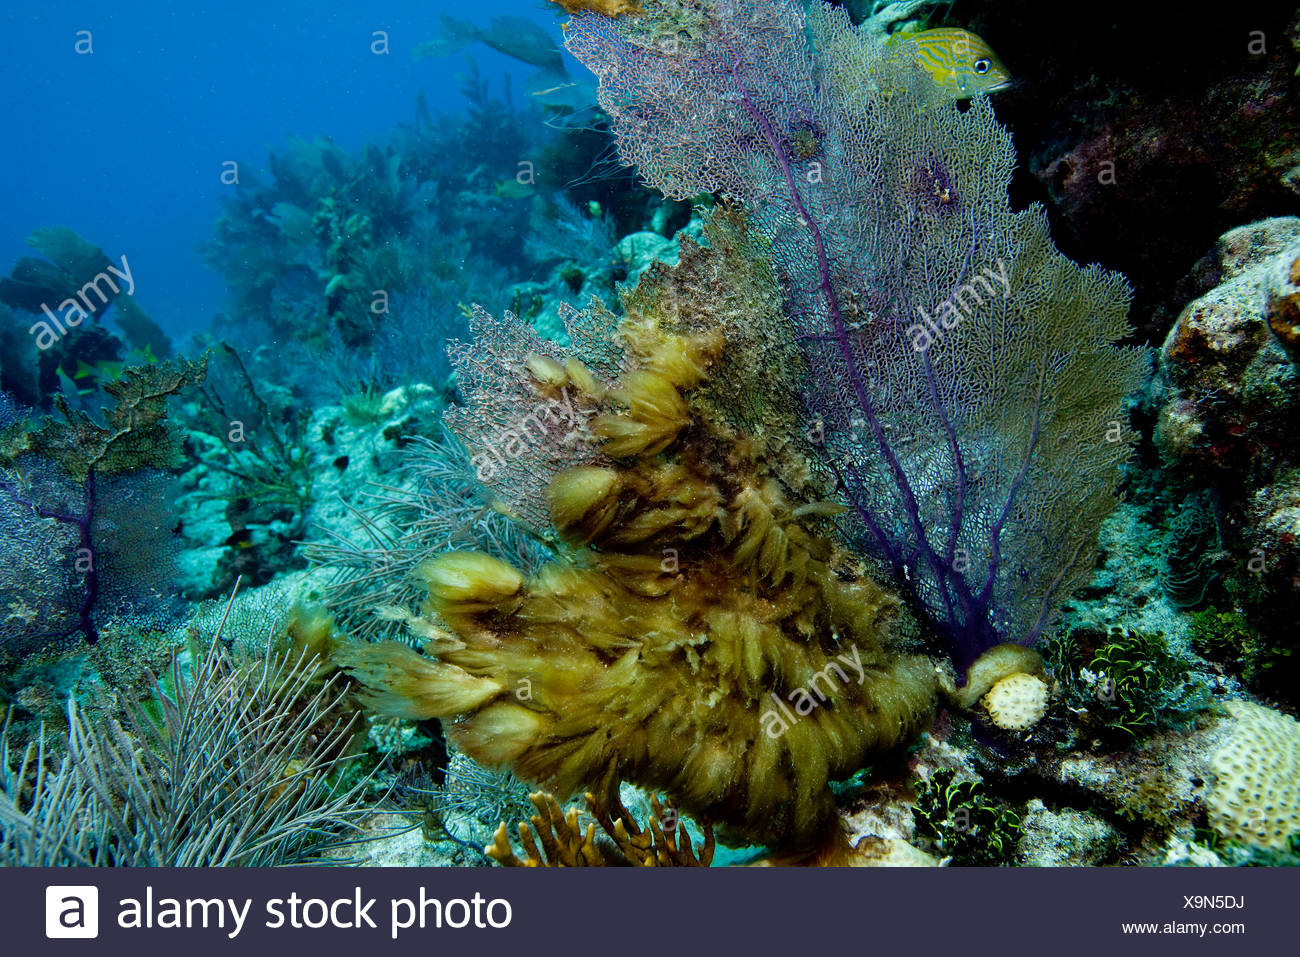 Underwater growth of algae. - Stock Image